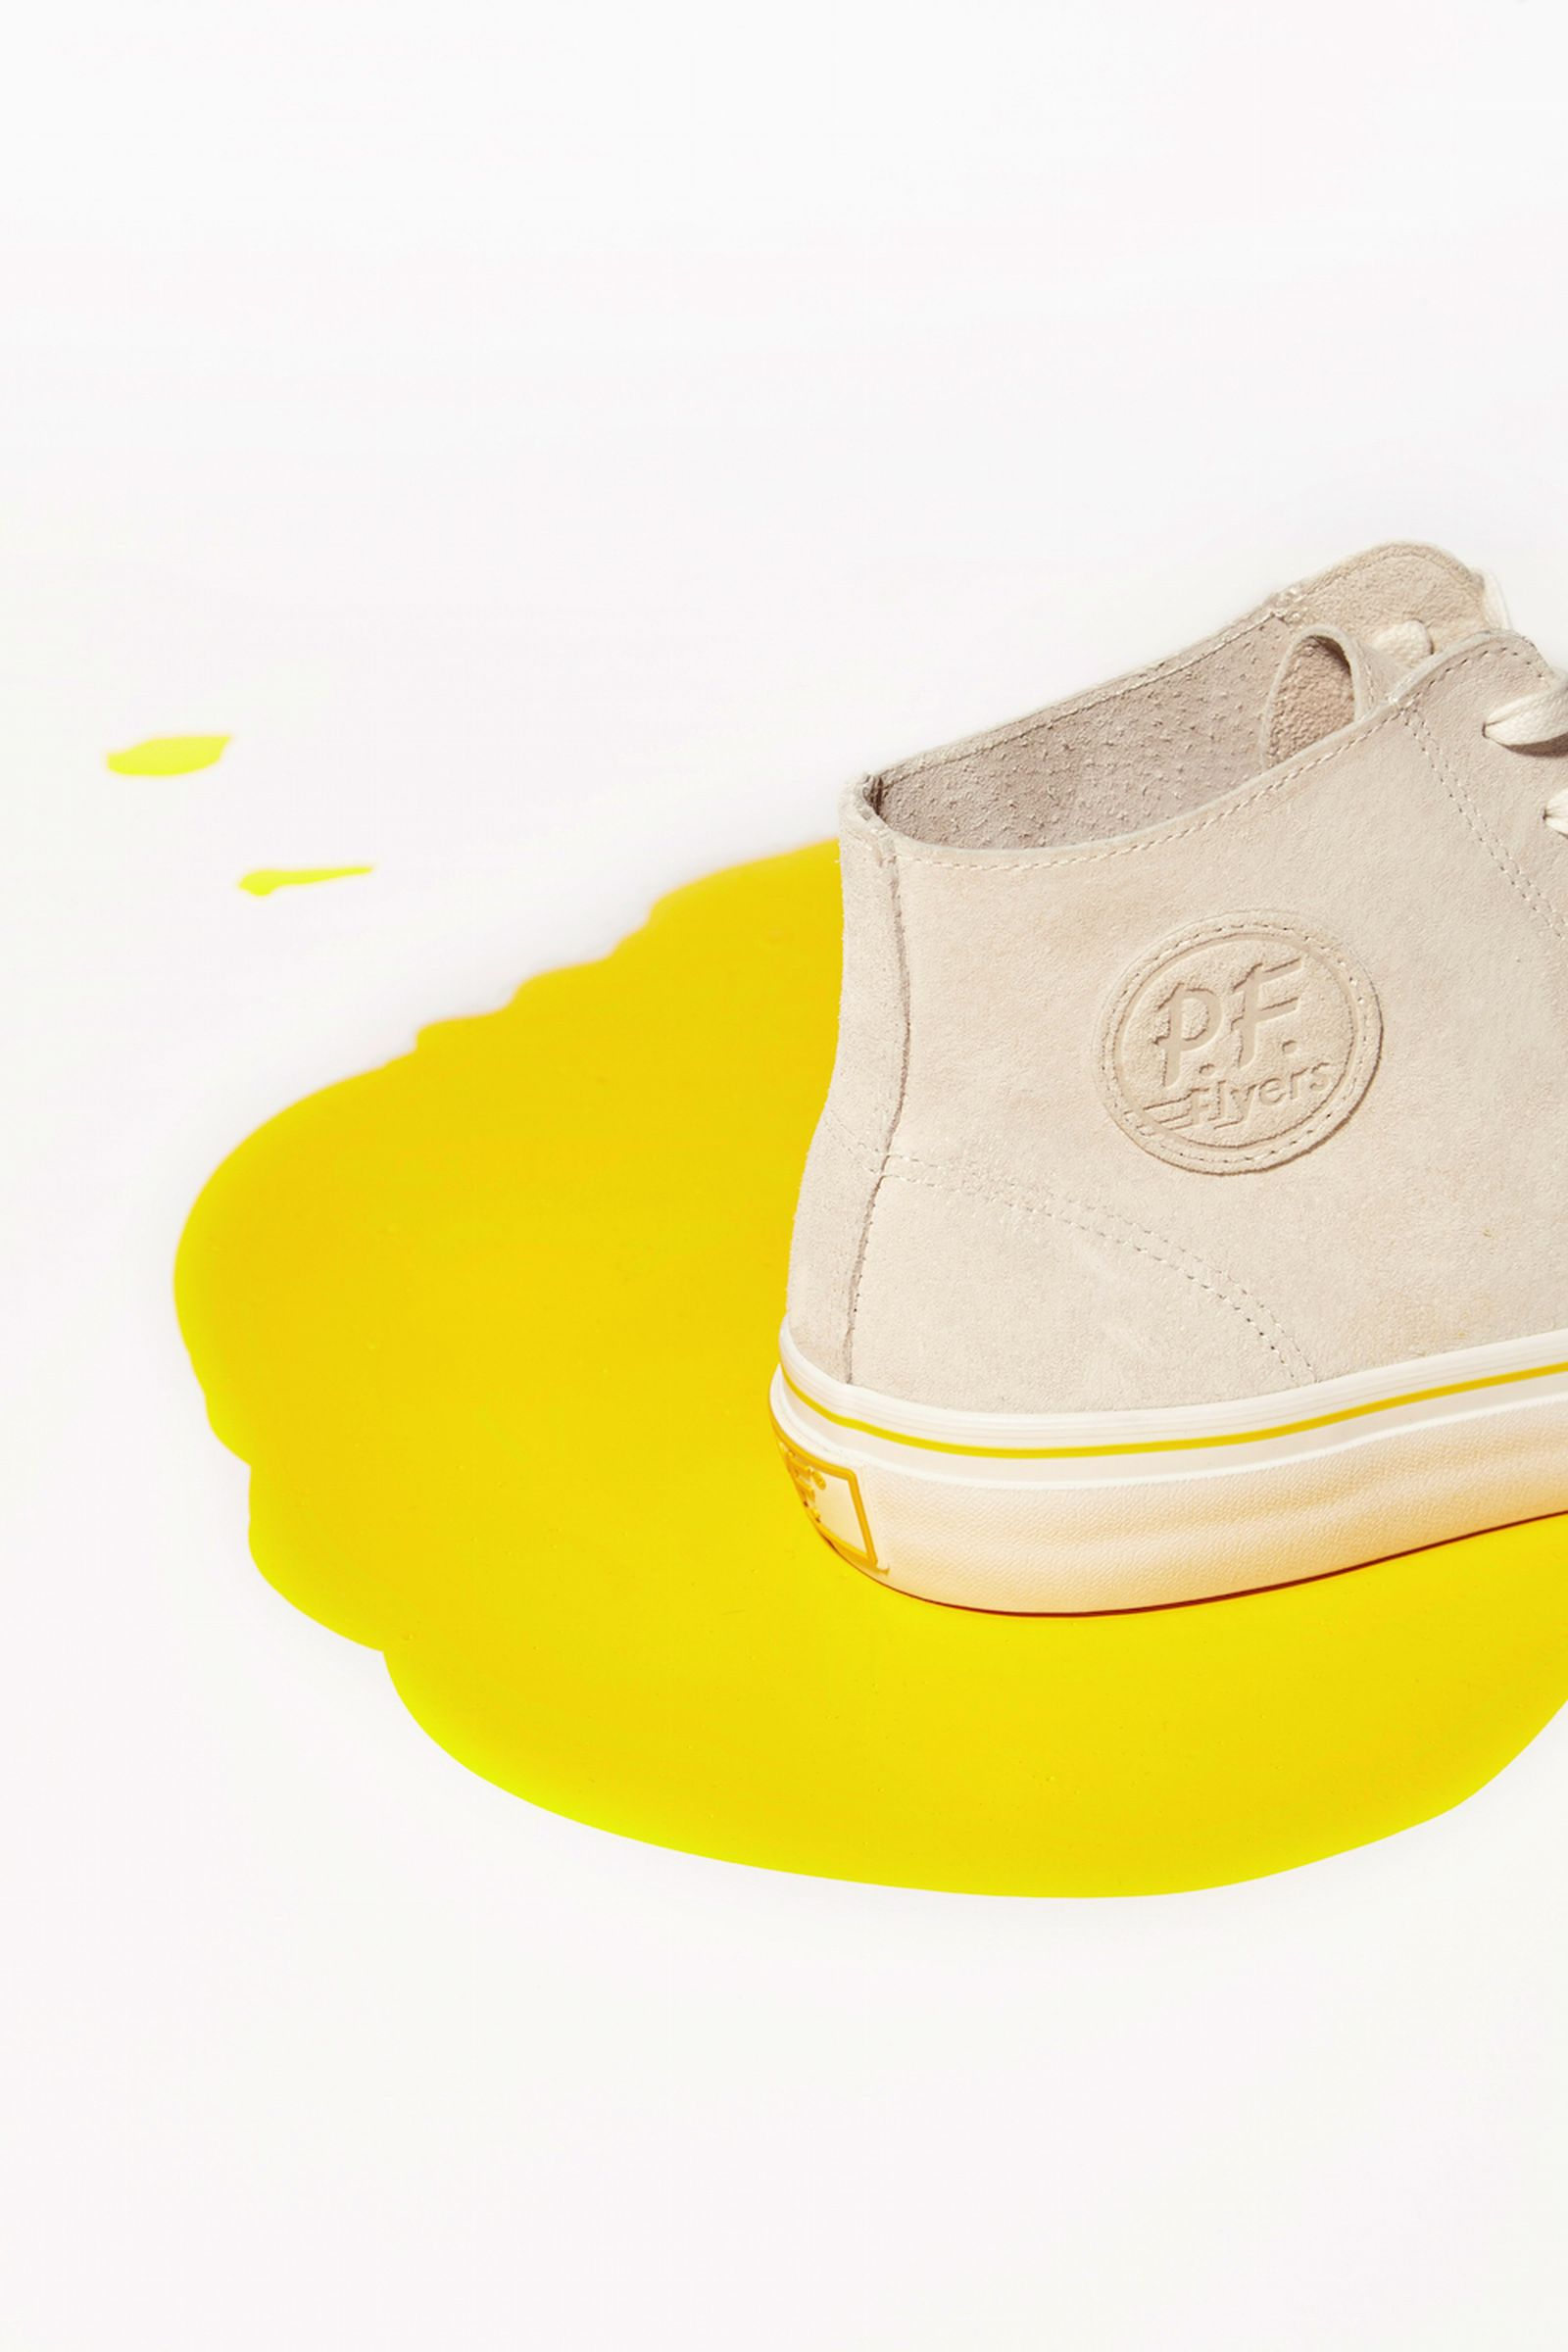 universal-works-pf-flyers-center-capsule-05